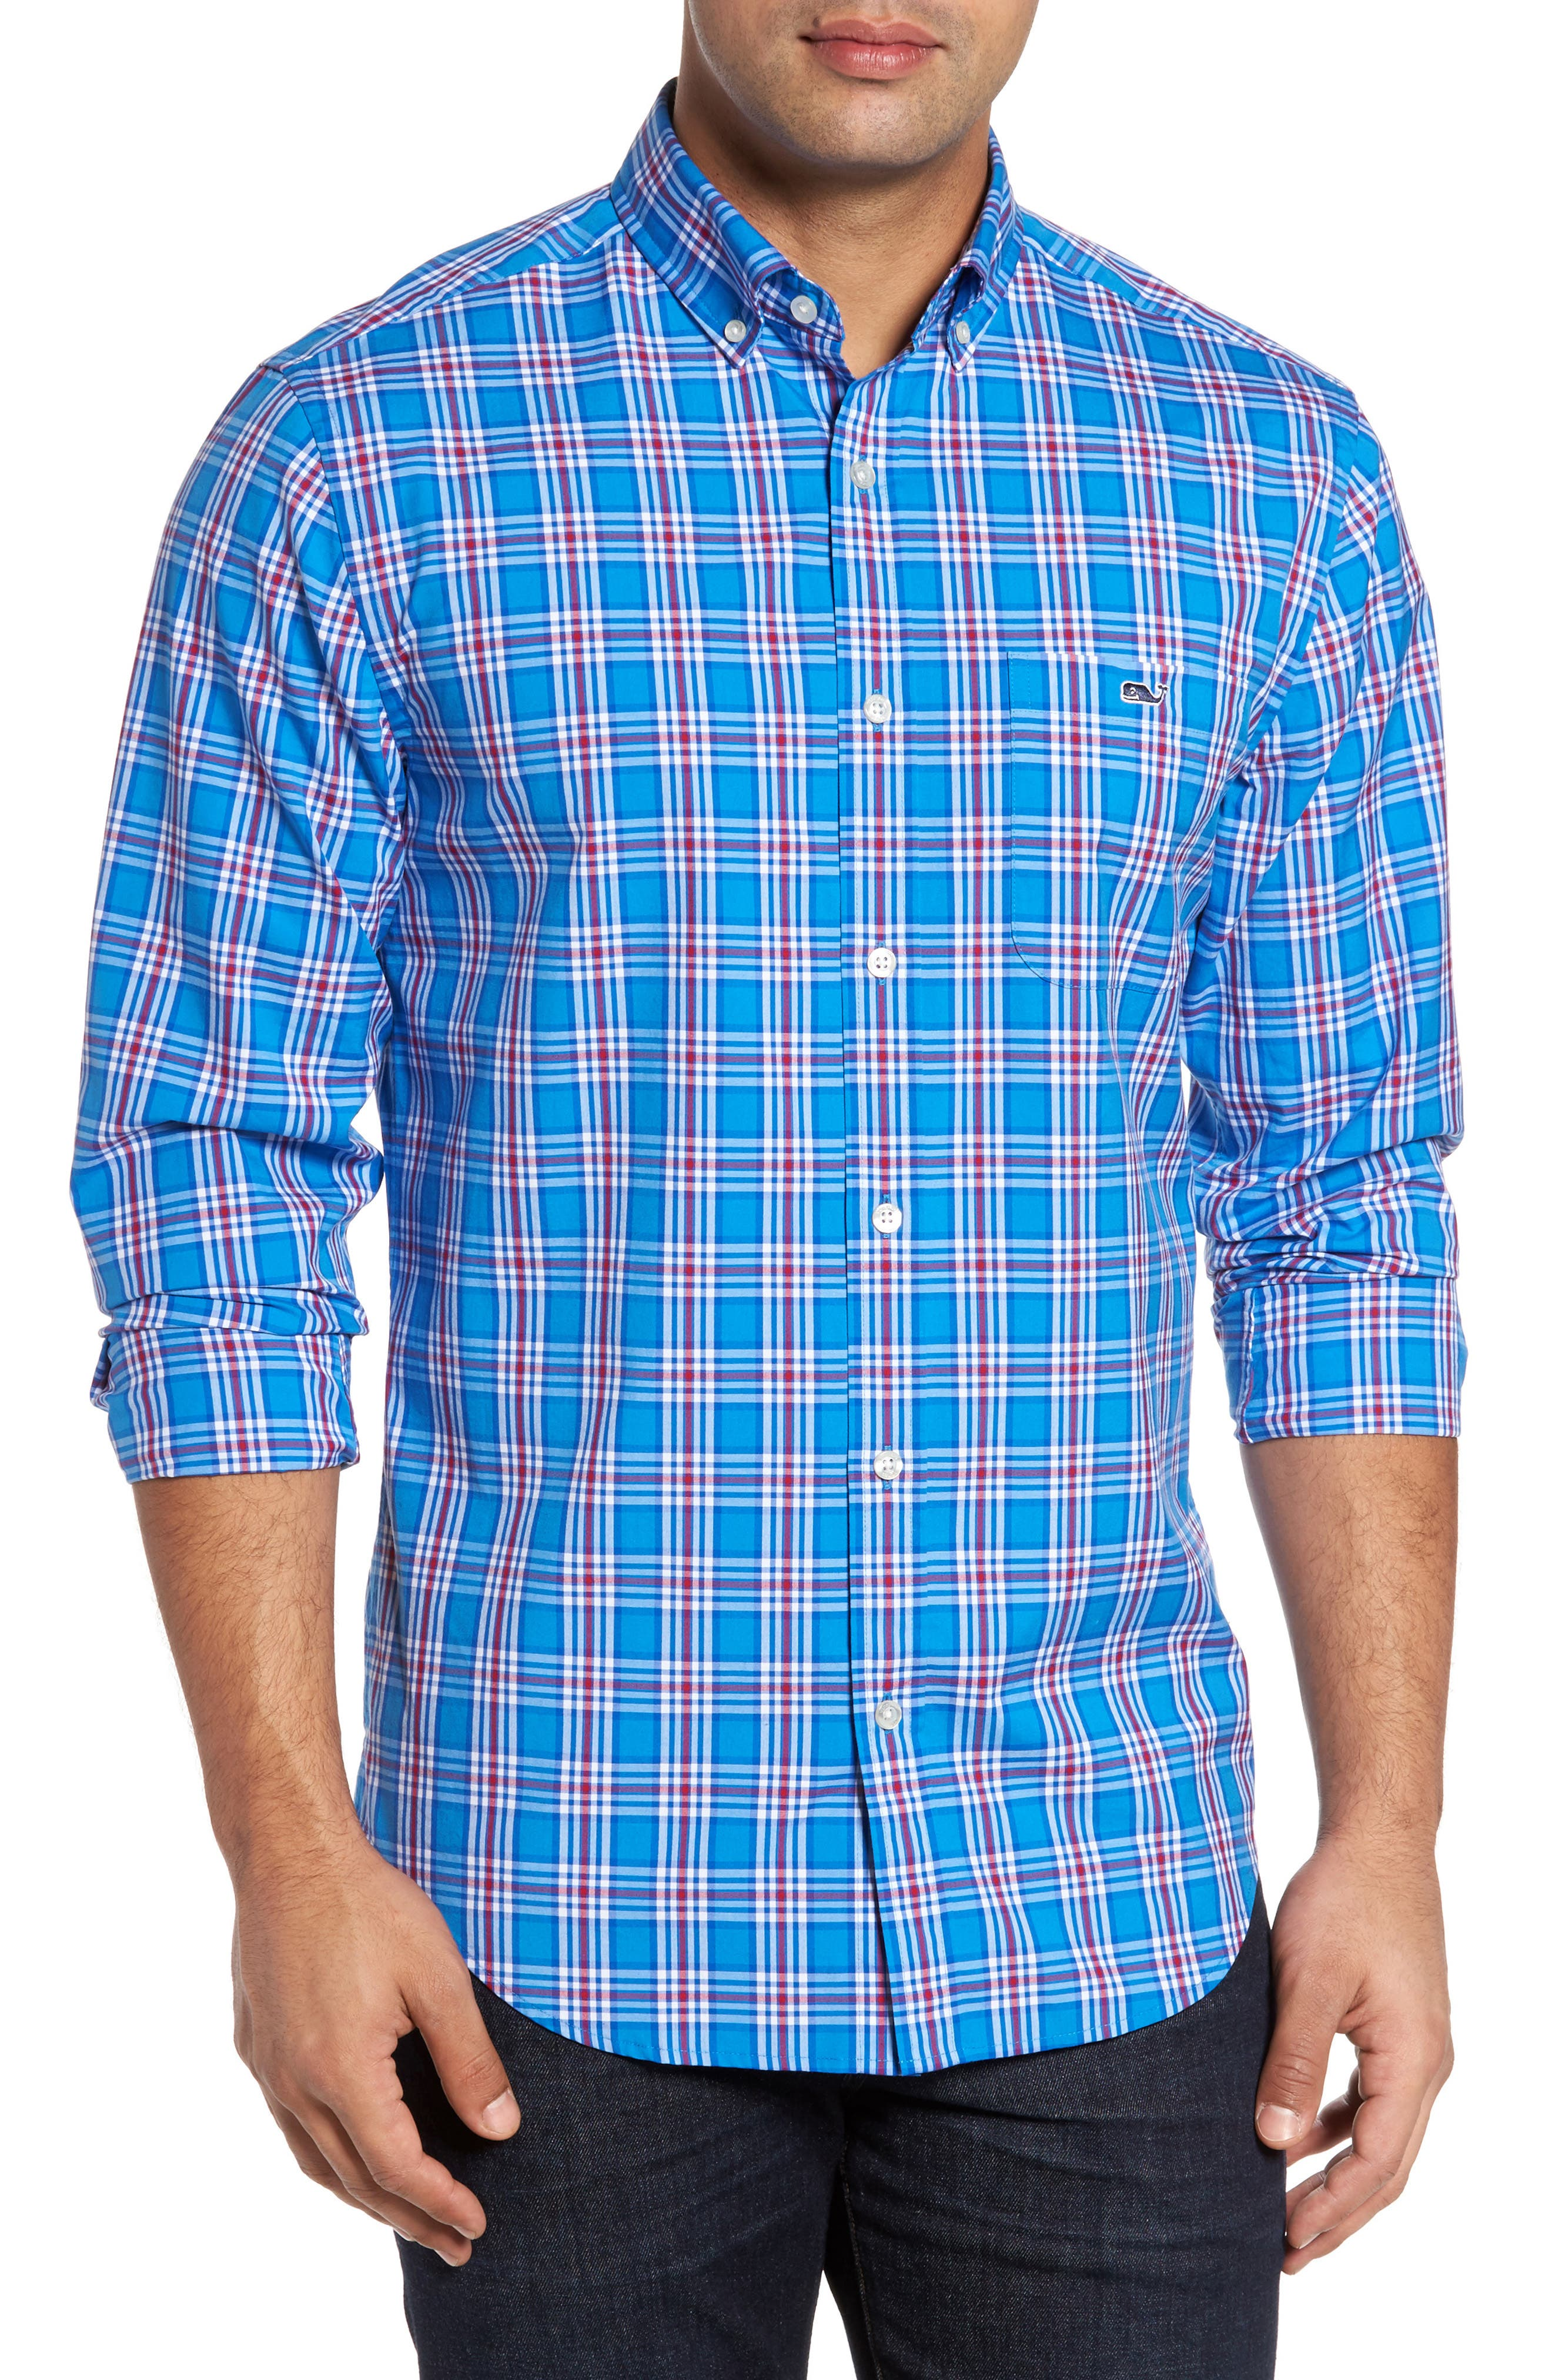 Tucker Chandler Pond Classic Fit Plaid Sport Shirt,                             Main thumbnail 1, color,                             Hull Blue